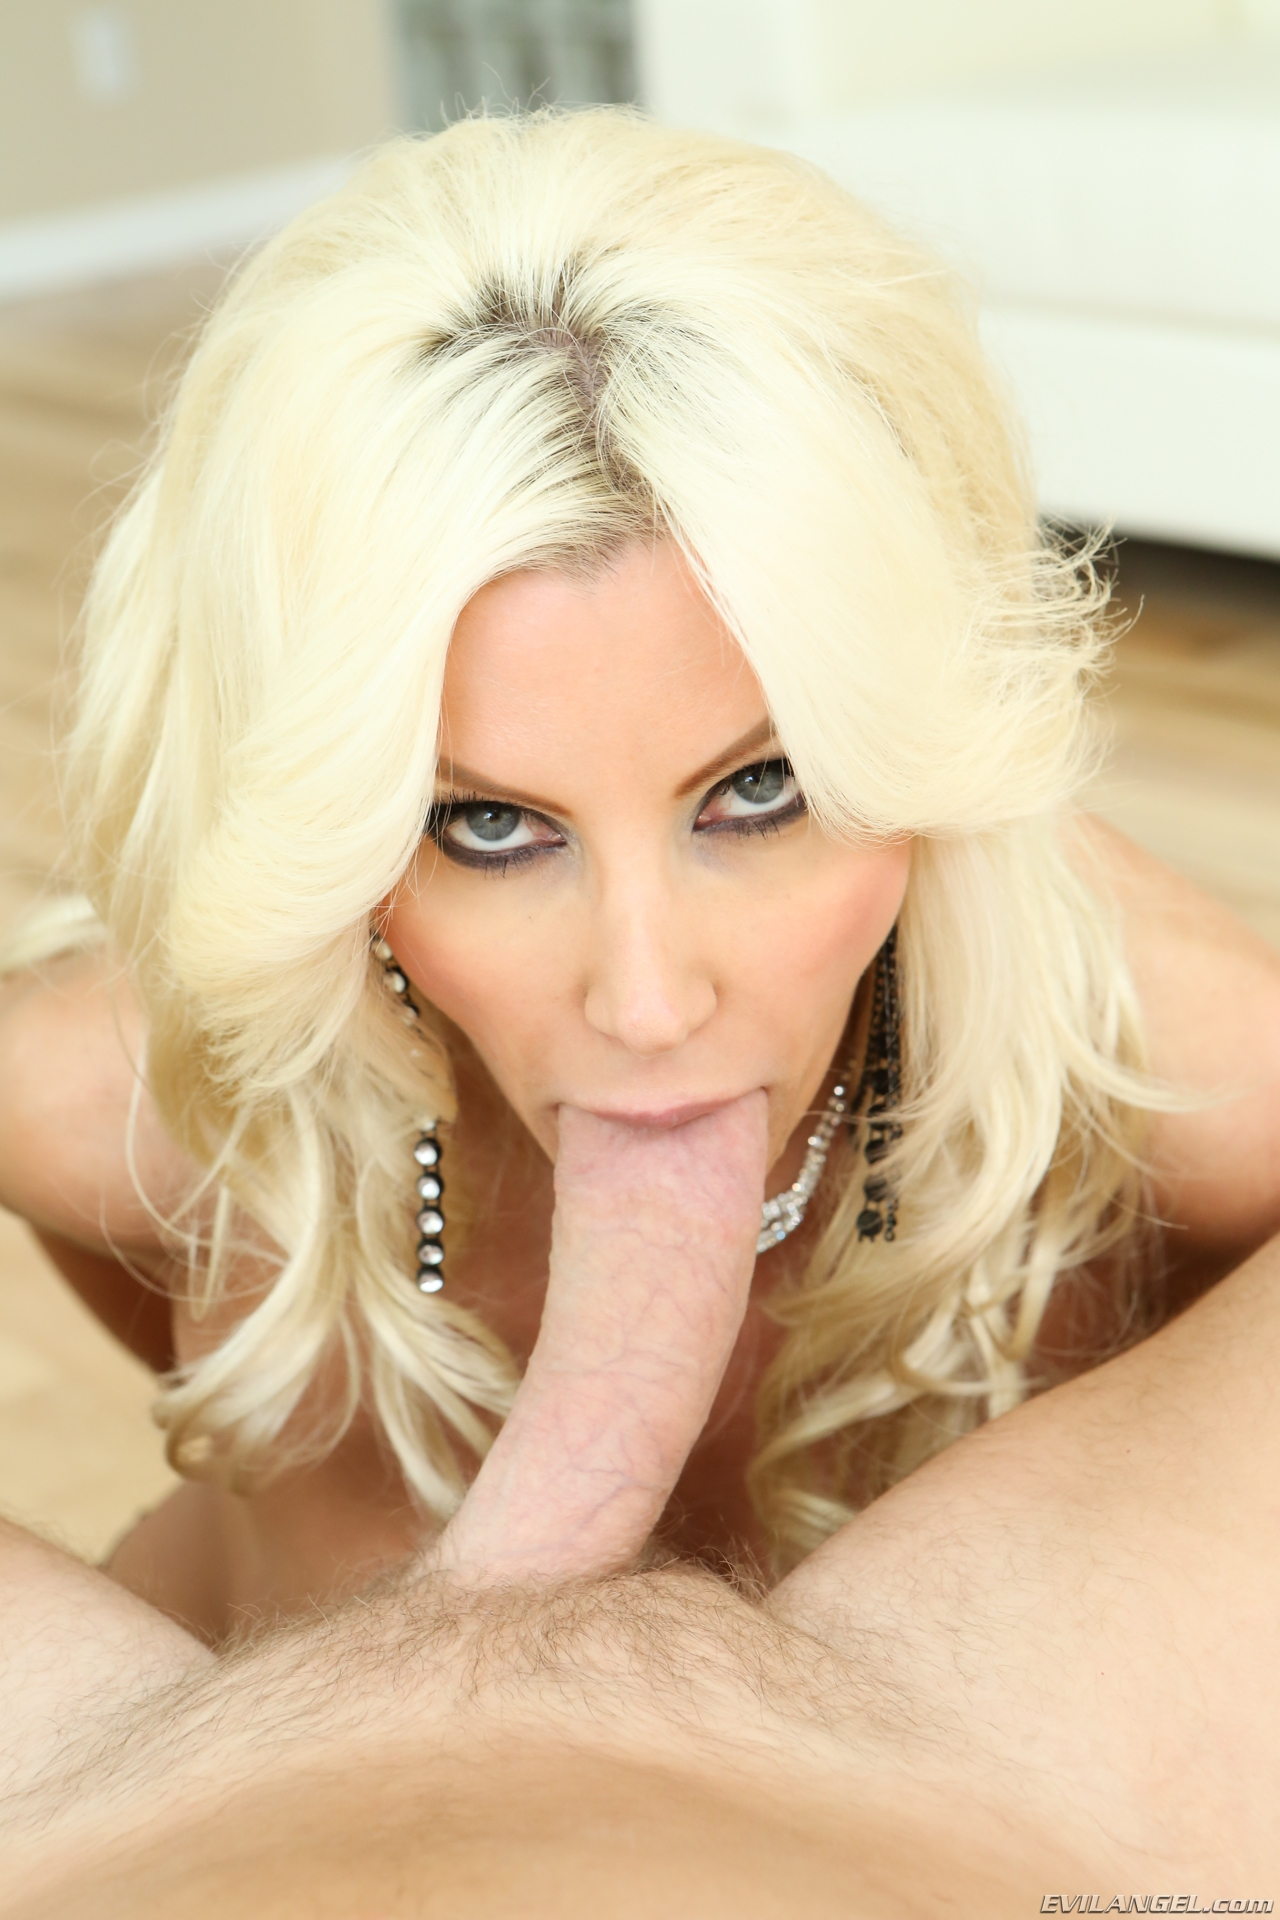 Brittany andrews blowjob God they're